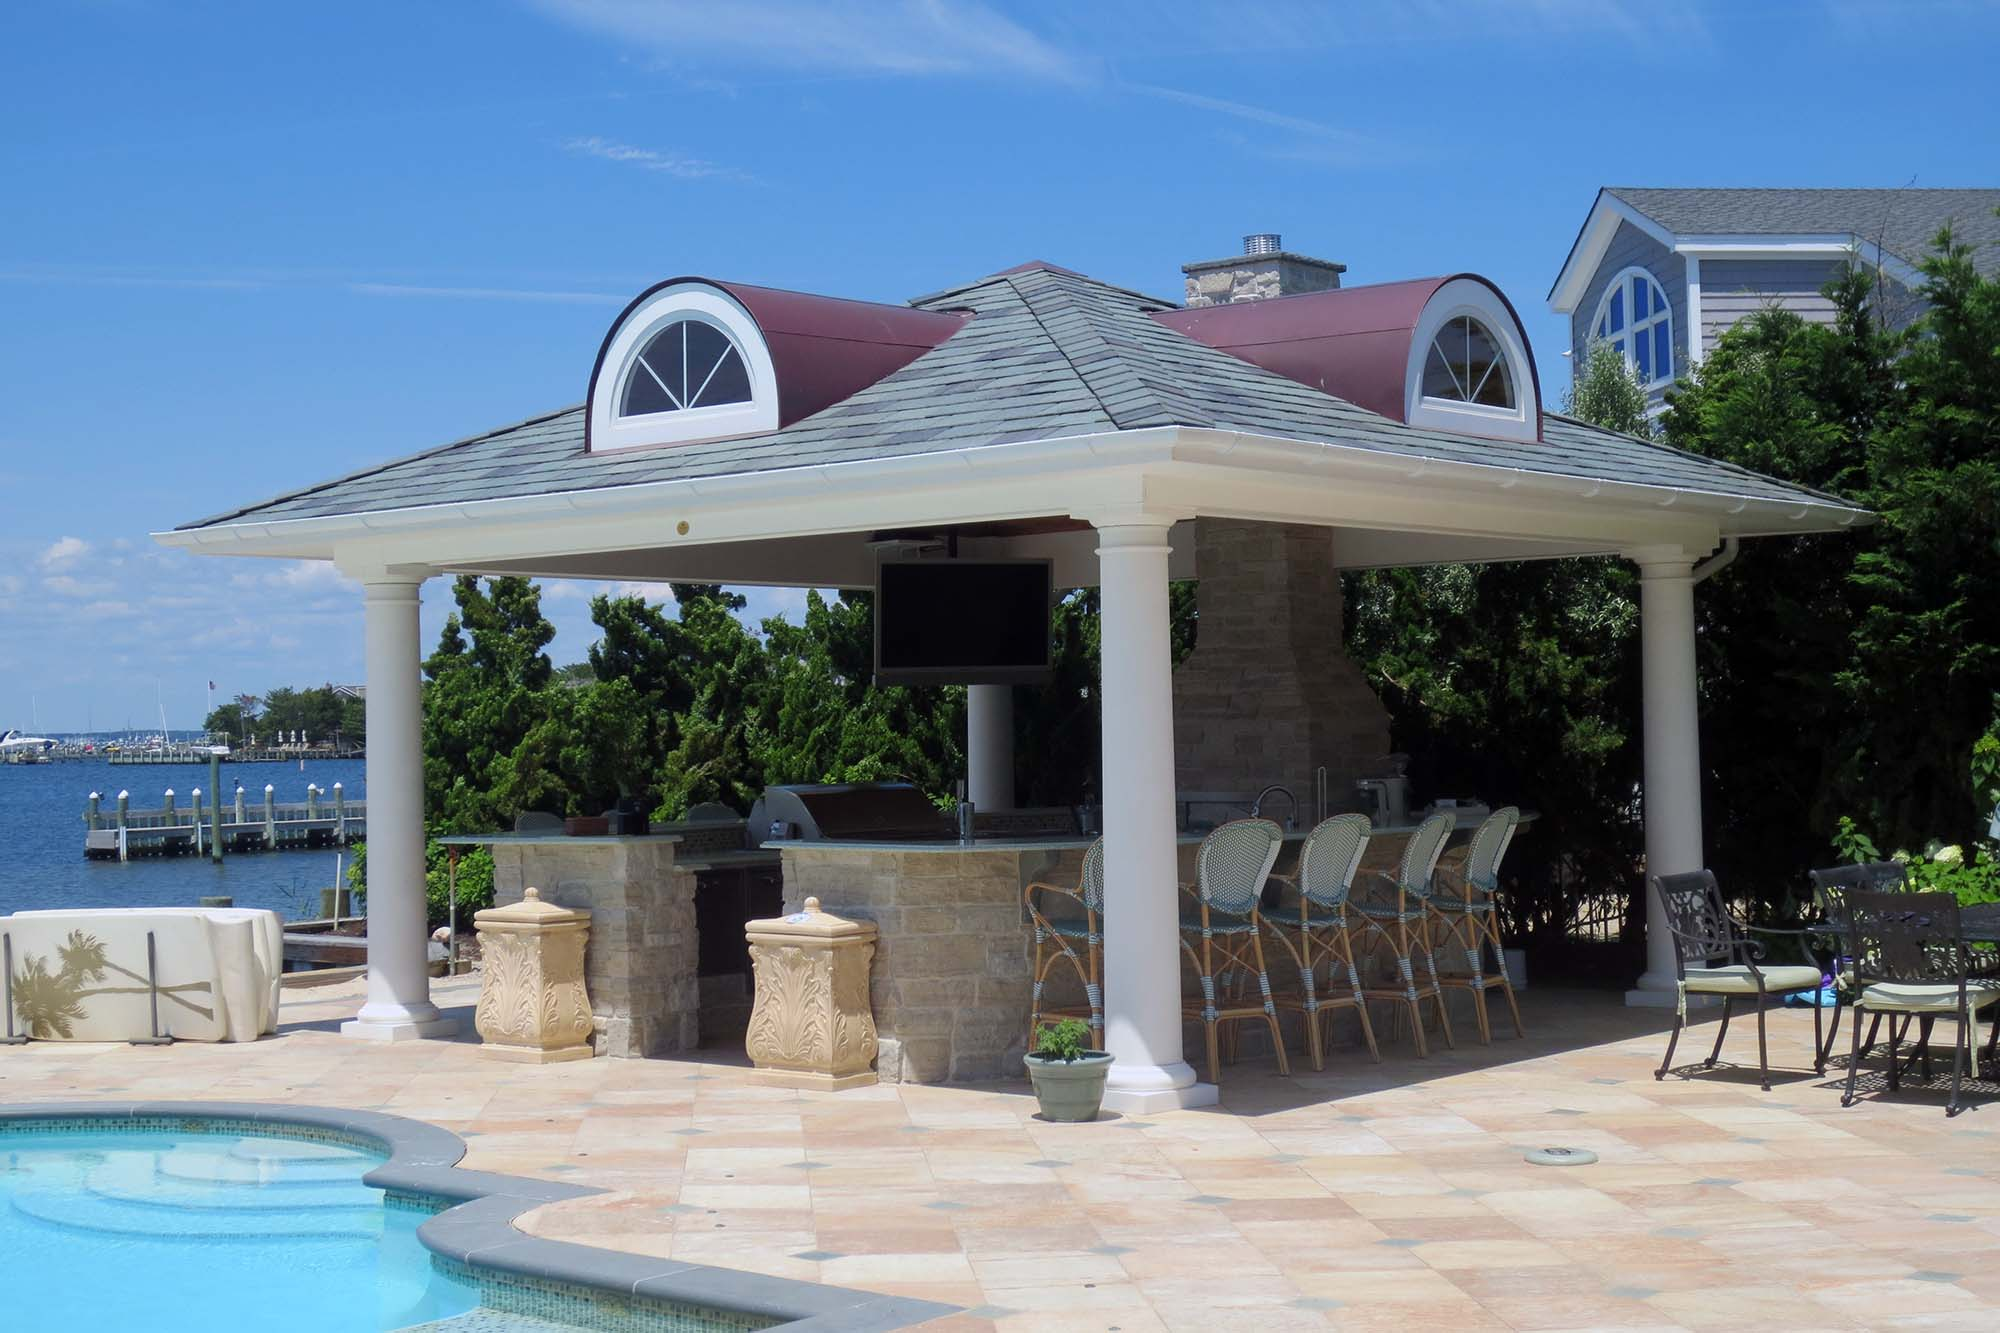 cool pool house 4 round columns outdoor fireplace tv bar grill outdoor kitchen stools tile patio